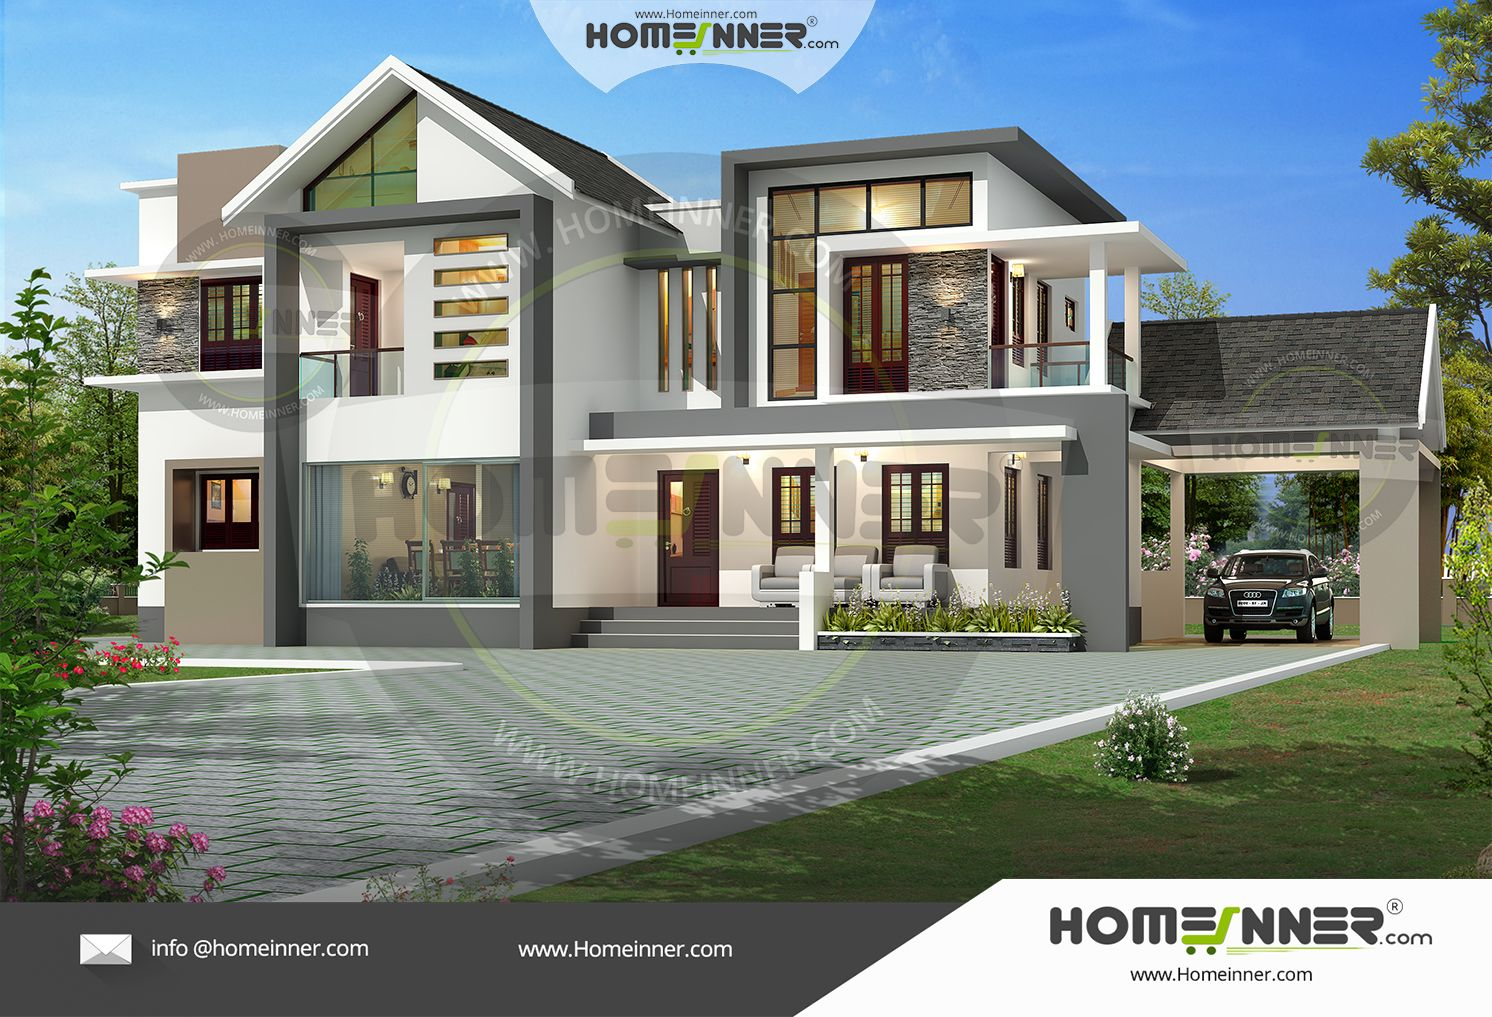 Searching for a luxury bungalow home villa design 4 bedroom 4 bath 2 courtyards l shape sitout then this homeinner designed luxury villa plan will be consi